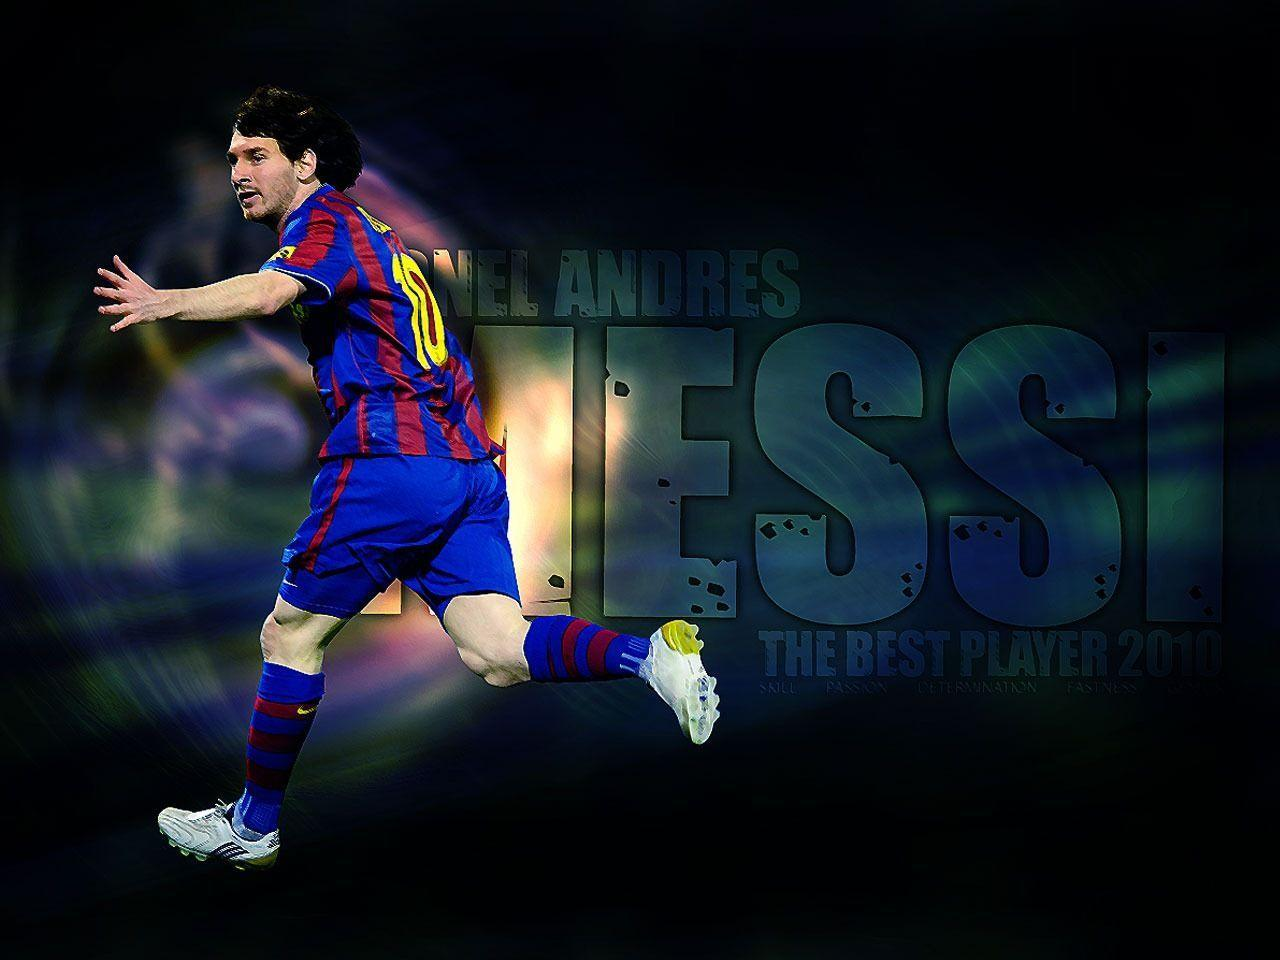 Lionel Messi Wallpaper Hd Hd Desktop 10 HD Wallpaperscom